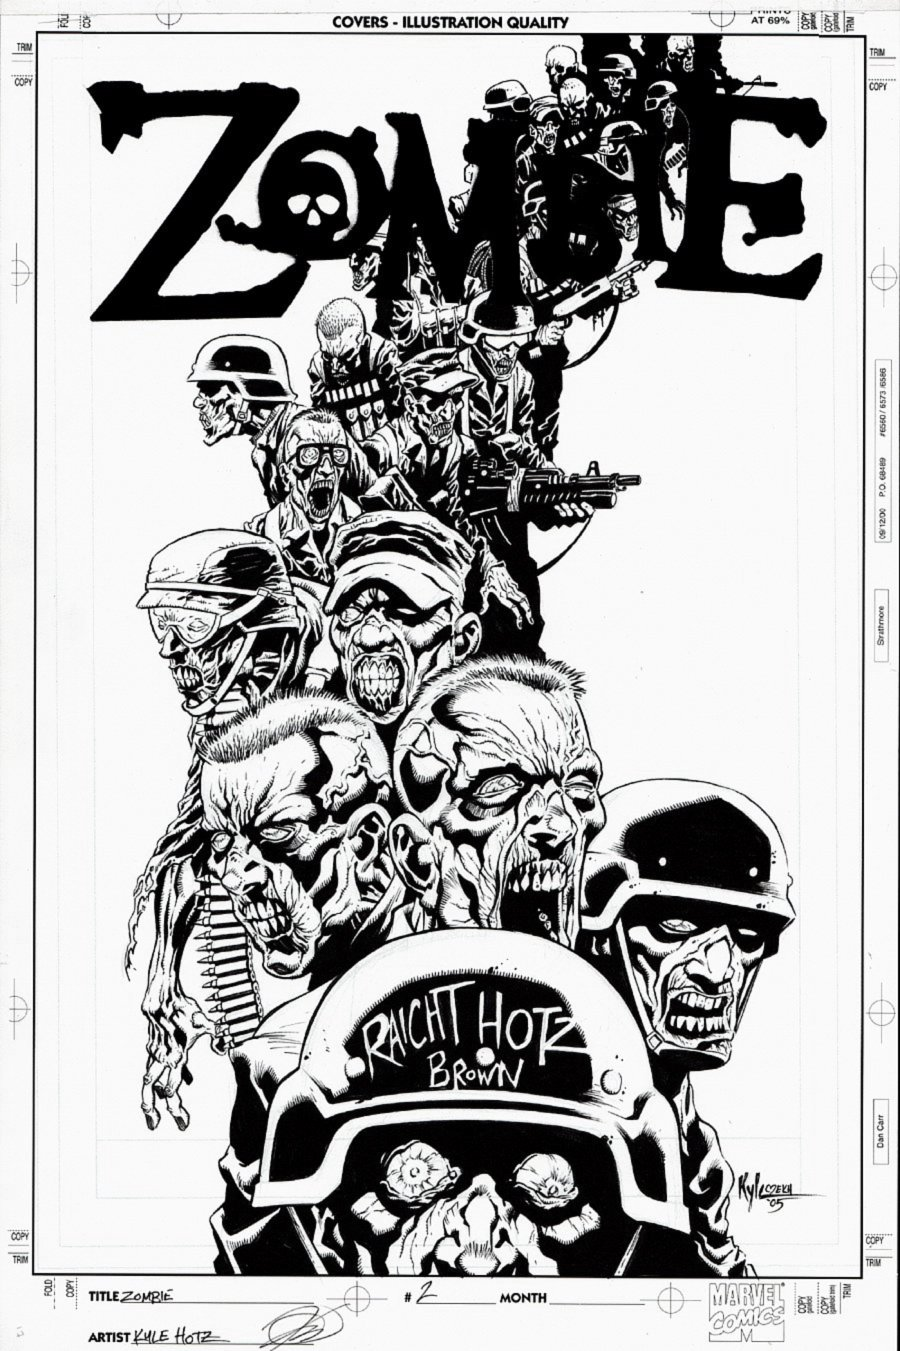 Zombie #1 Cover (PRE-WALKING DEAD FIRST ISSUE COVER!) 2005